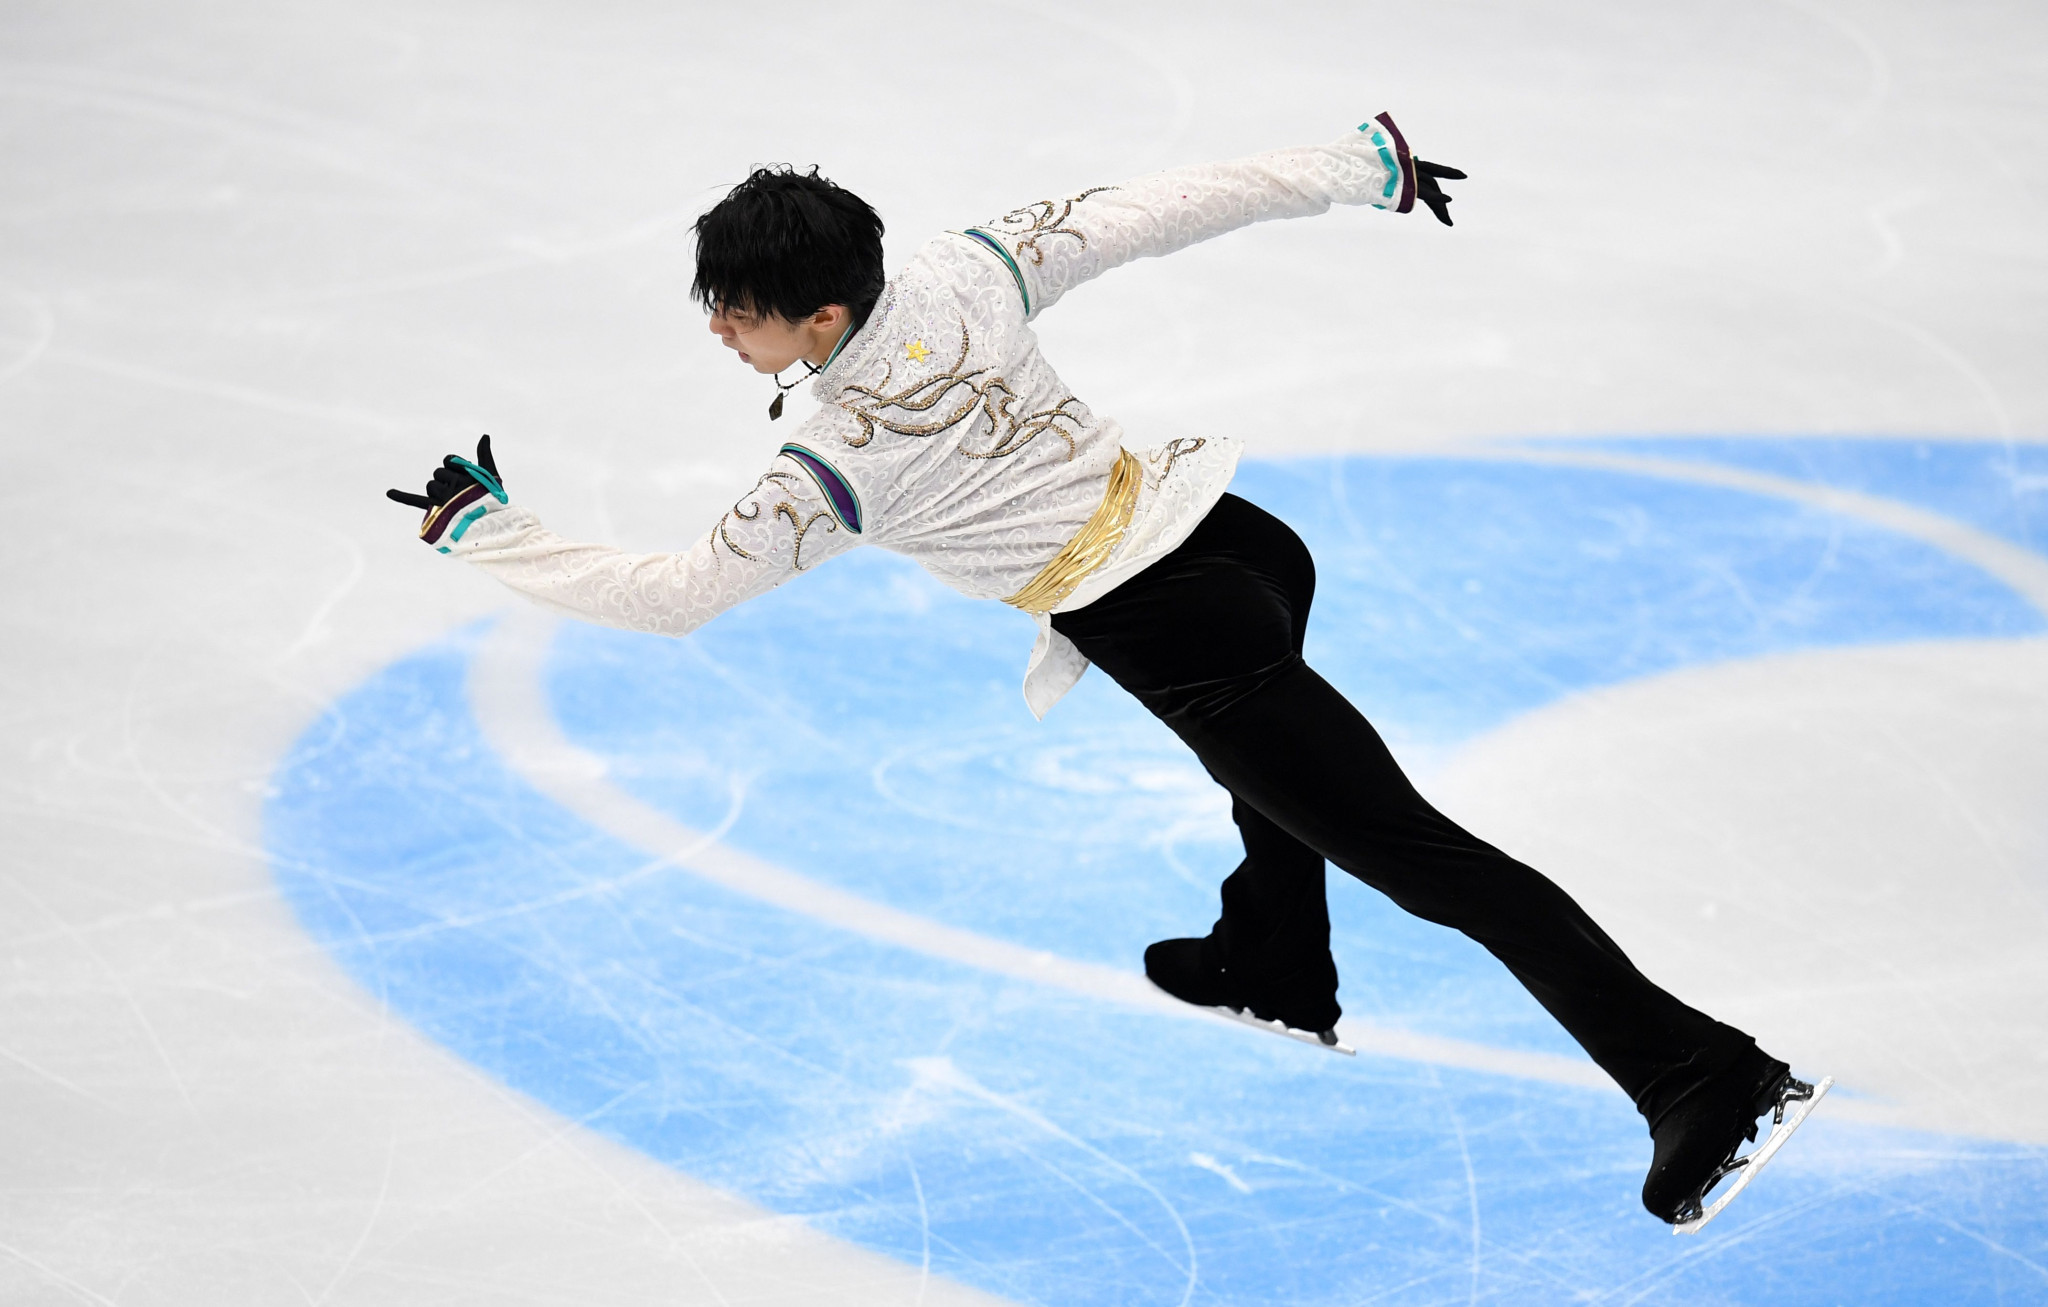 Hanyu to return to competitive action at Pyeongchang 2018 following ankle injury